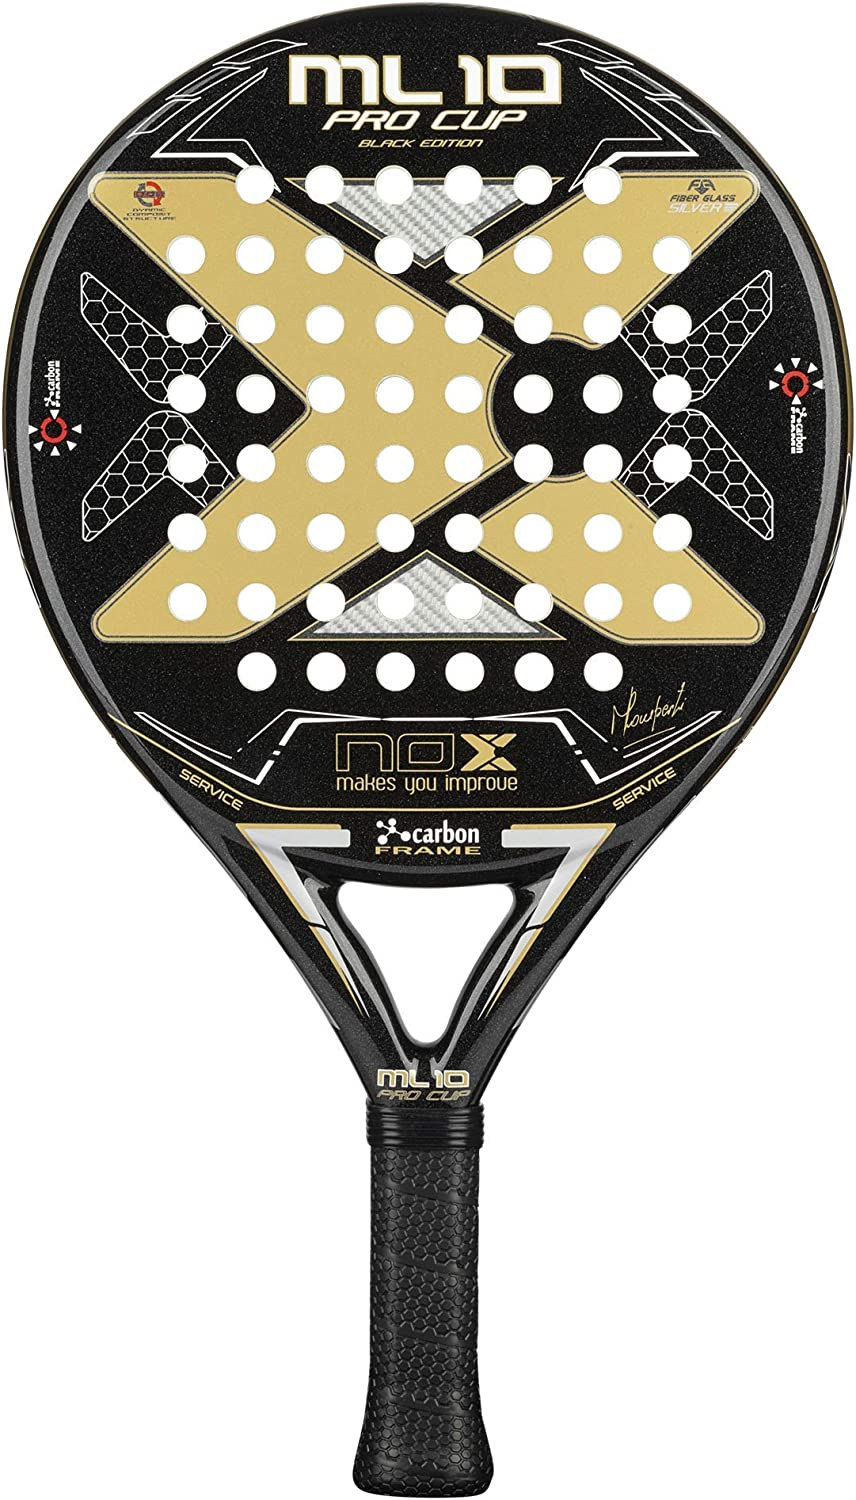 NOX Pala de pádel ML10 Pro Cup Black Edition: Amazon.es: Deportes ...